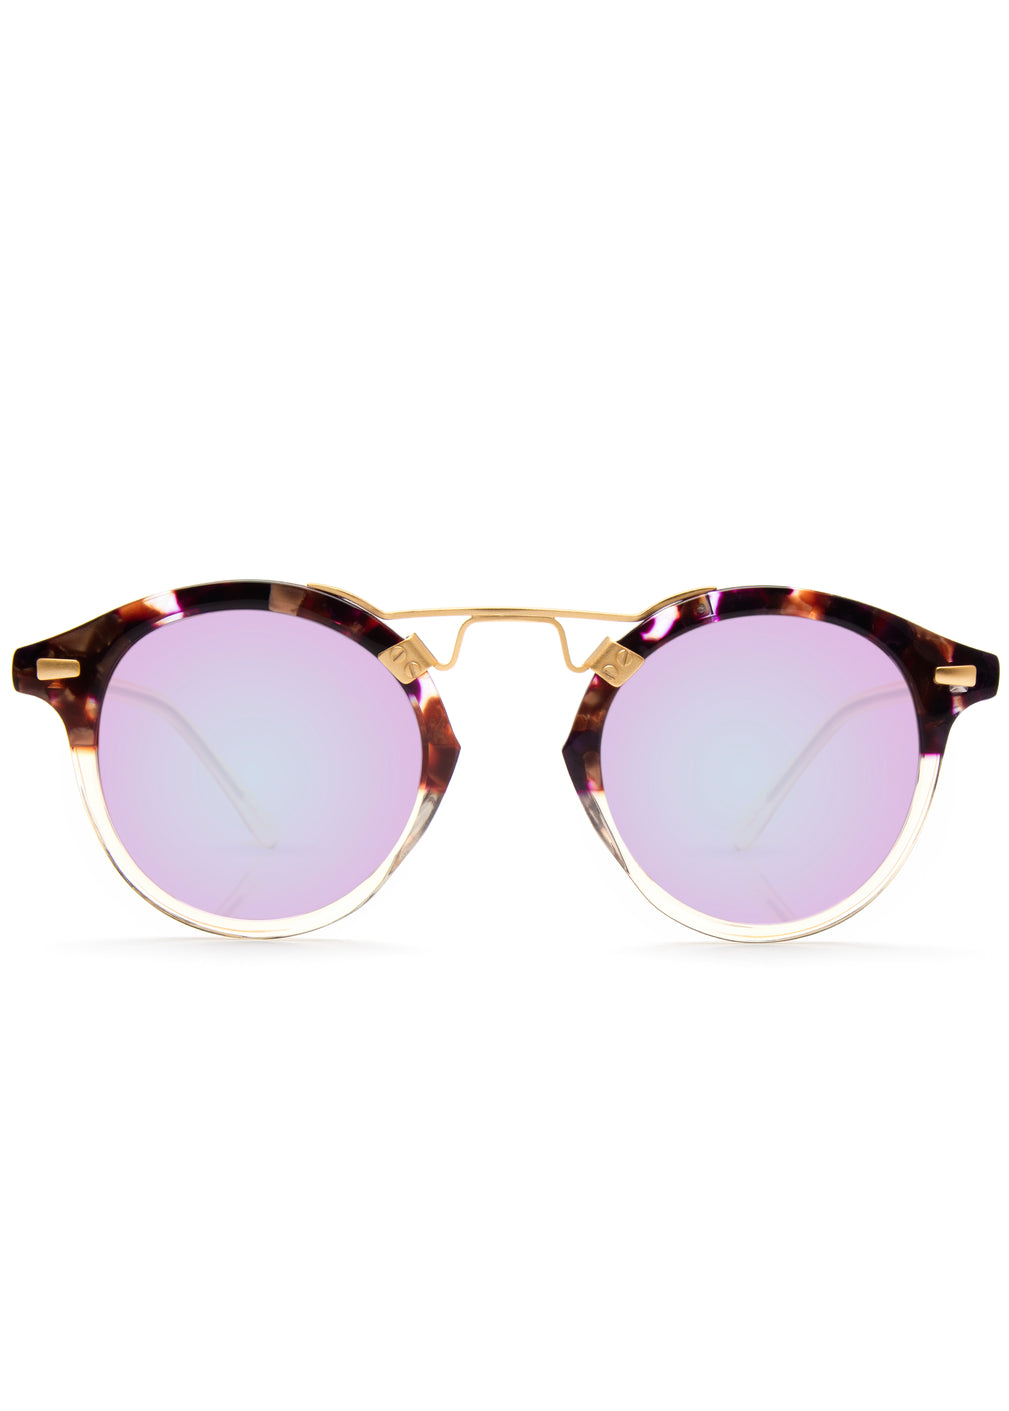 Krewe st. louis sunglasses stardust champagne